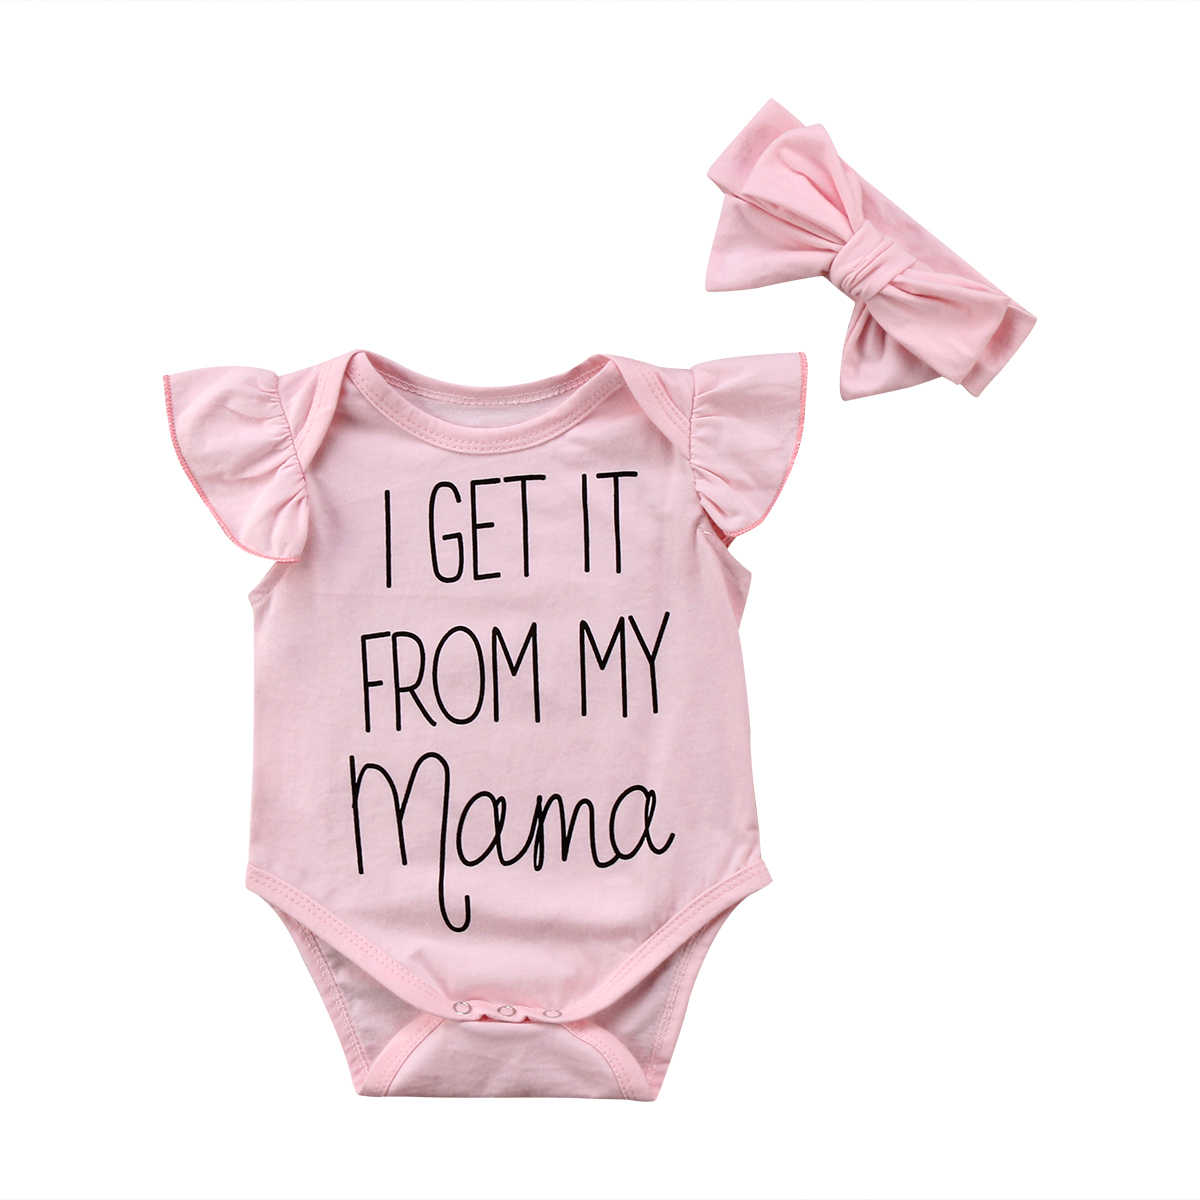 dc1b4903b Detail Feedback Questions about GET IT FROM MY MAMA Letter Newborn Baby  Girls Floral Romper Jumpsuit Headband Outfits Clothes Set on Aliexpress.com  ...